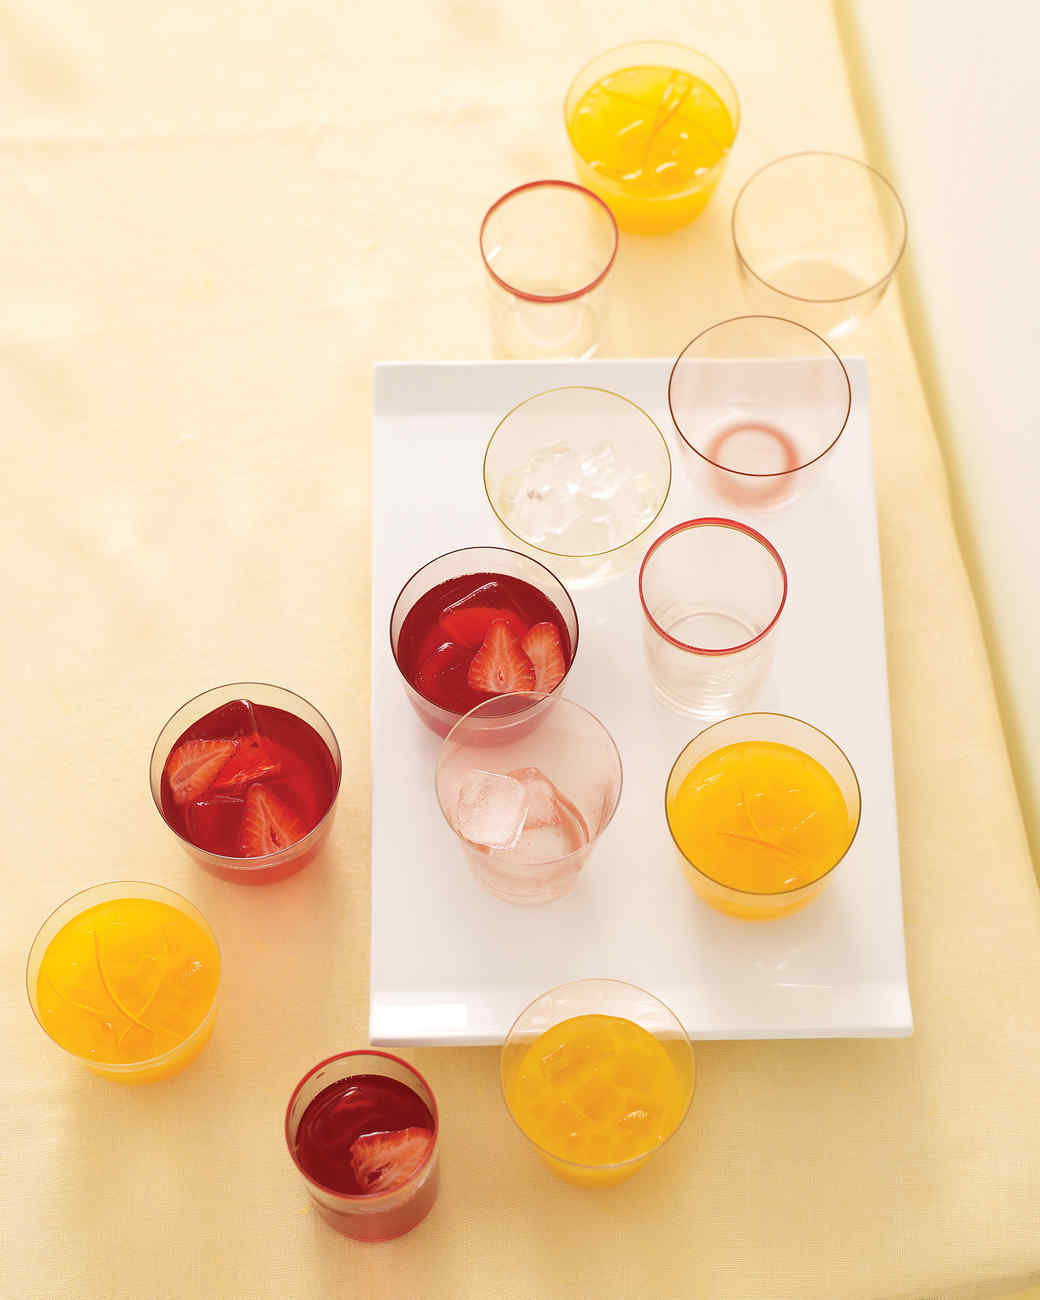 Sugar Free Punch For Baby Shower: Iced Tea Recipes